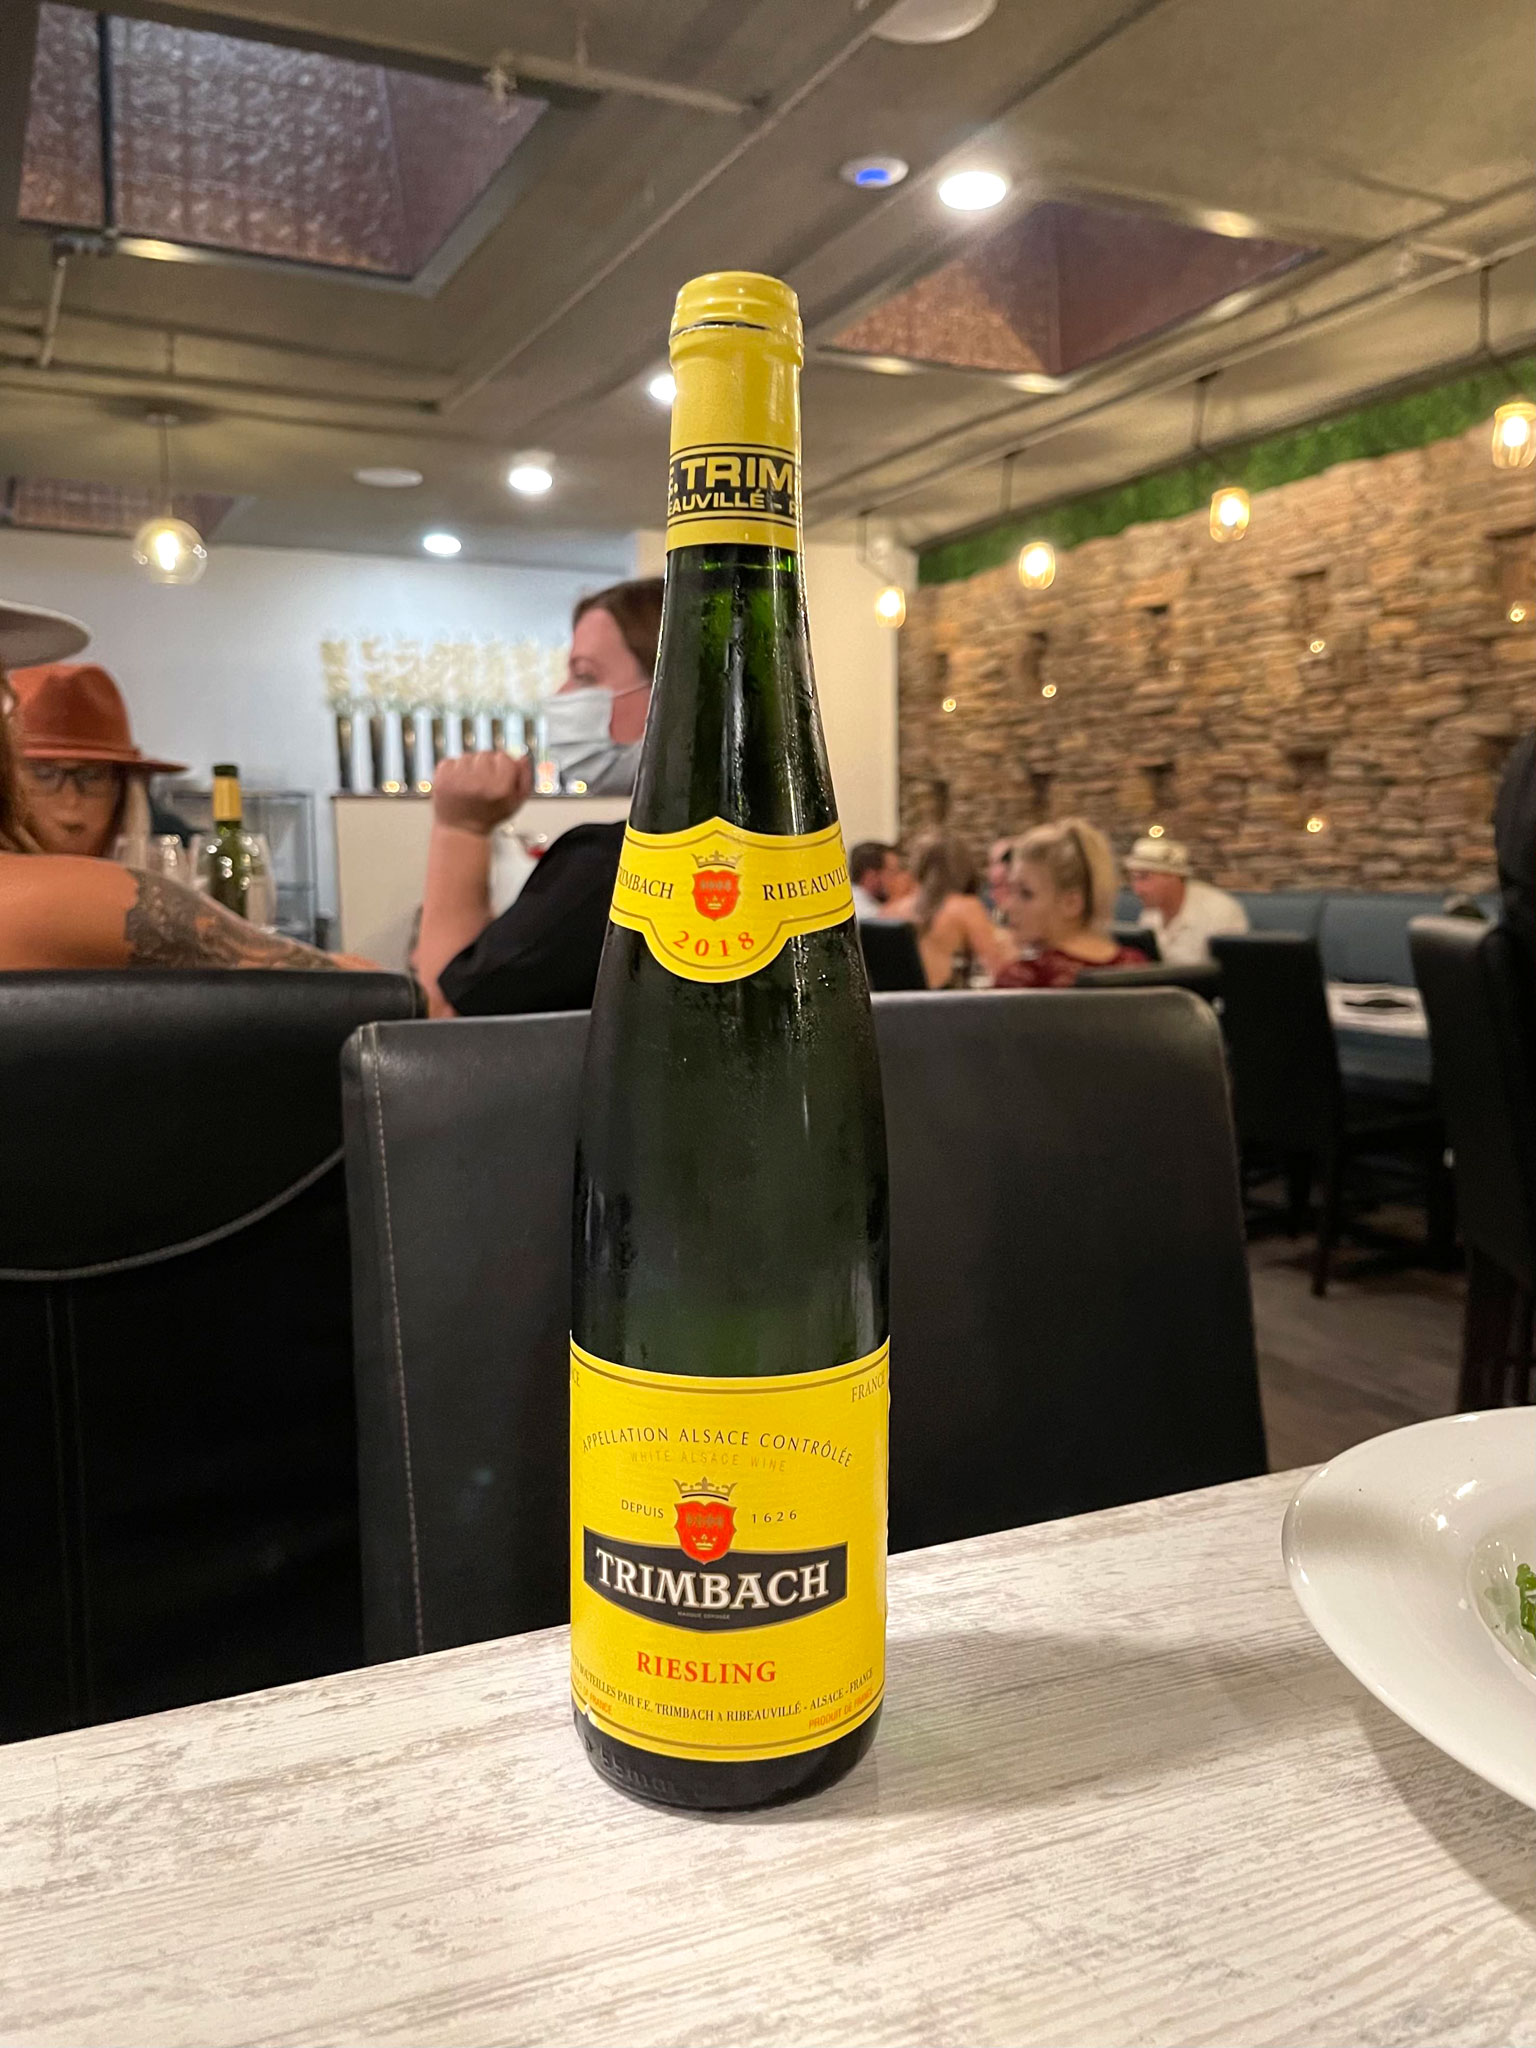 2018 Trimbach Riesling